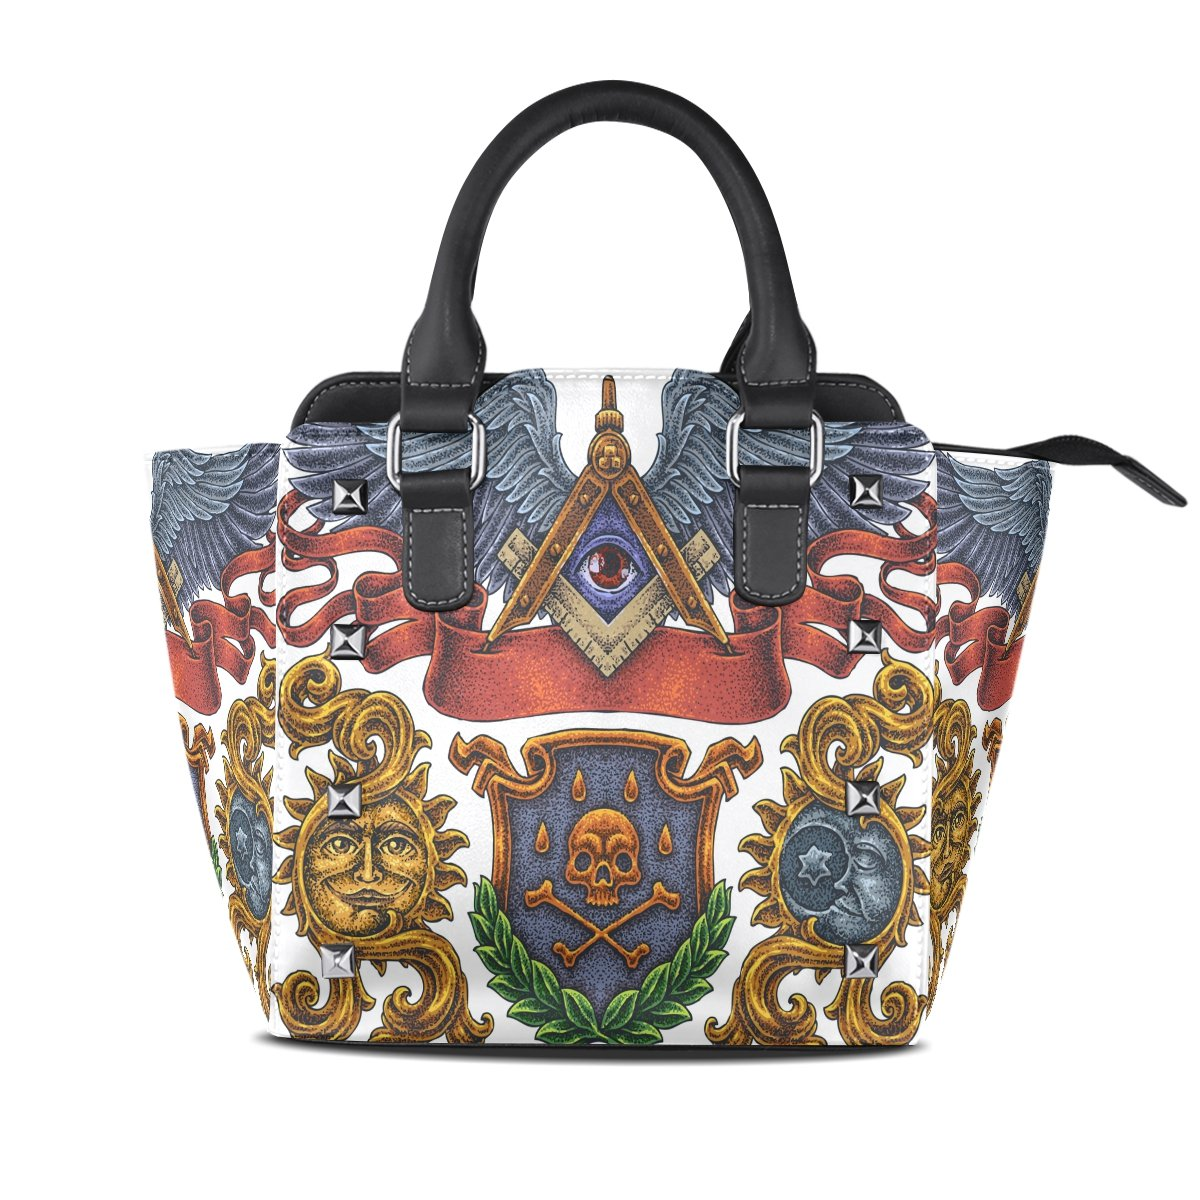 Womens Genuine Leather Hangbags Tote Bags Abstraction Purse Shoulder Bags